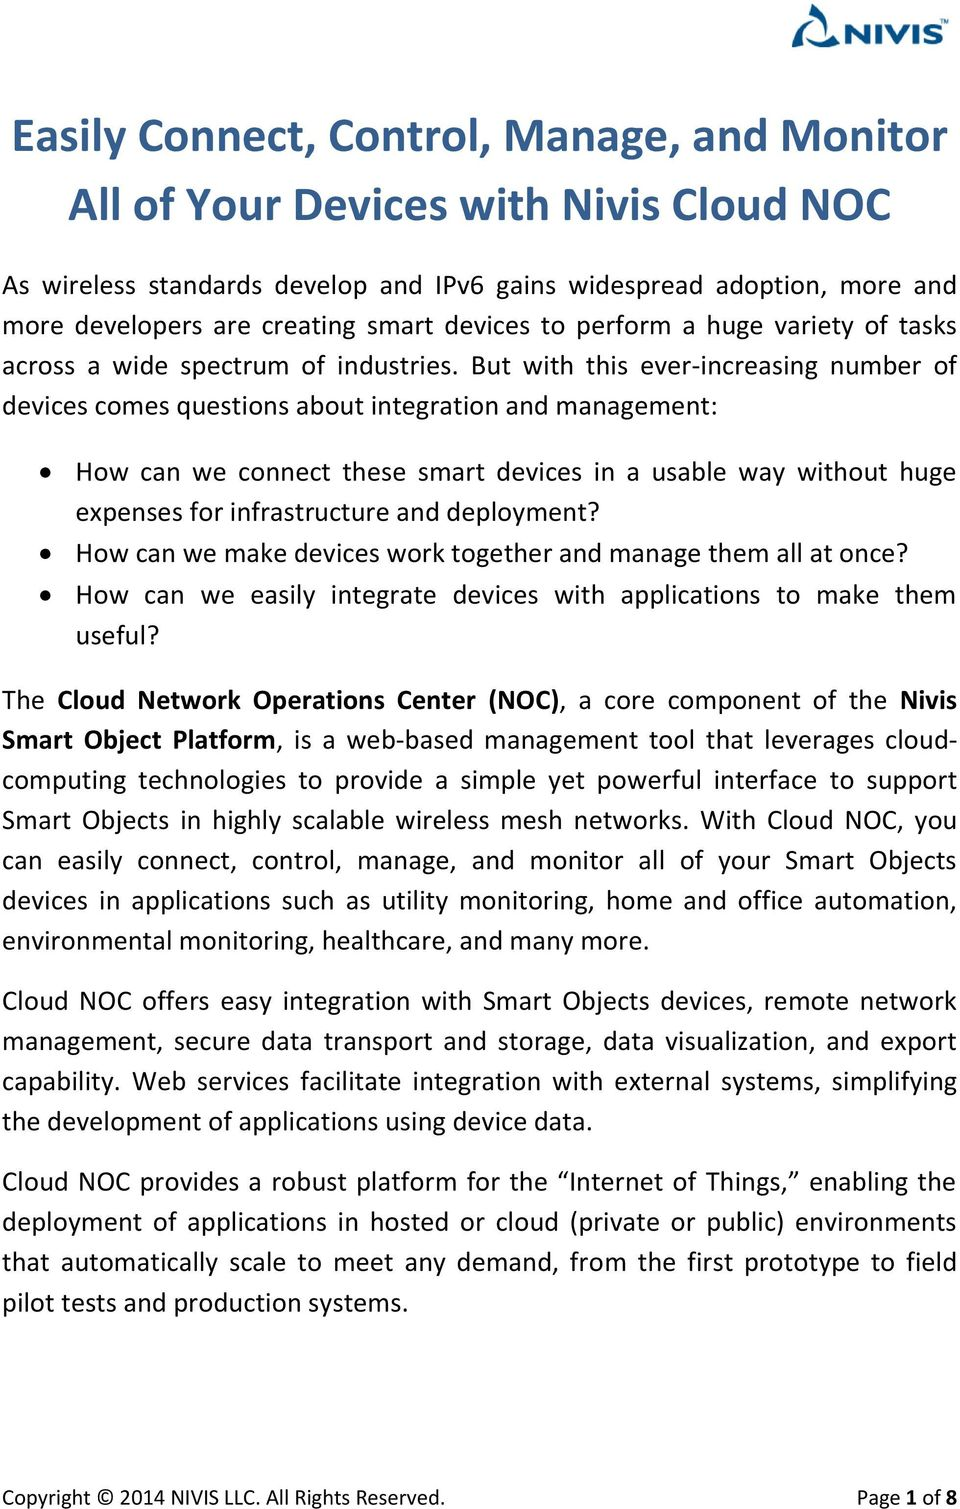 But with this ever-increasing number of devices comes questions about integration and management: How can we connect these smart devices in a usable way without huge expenses for infrastructure and